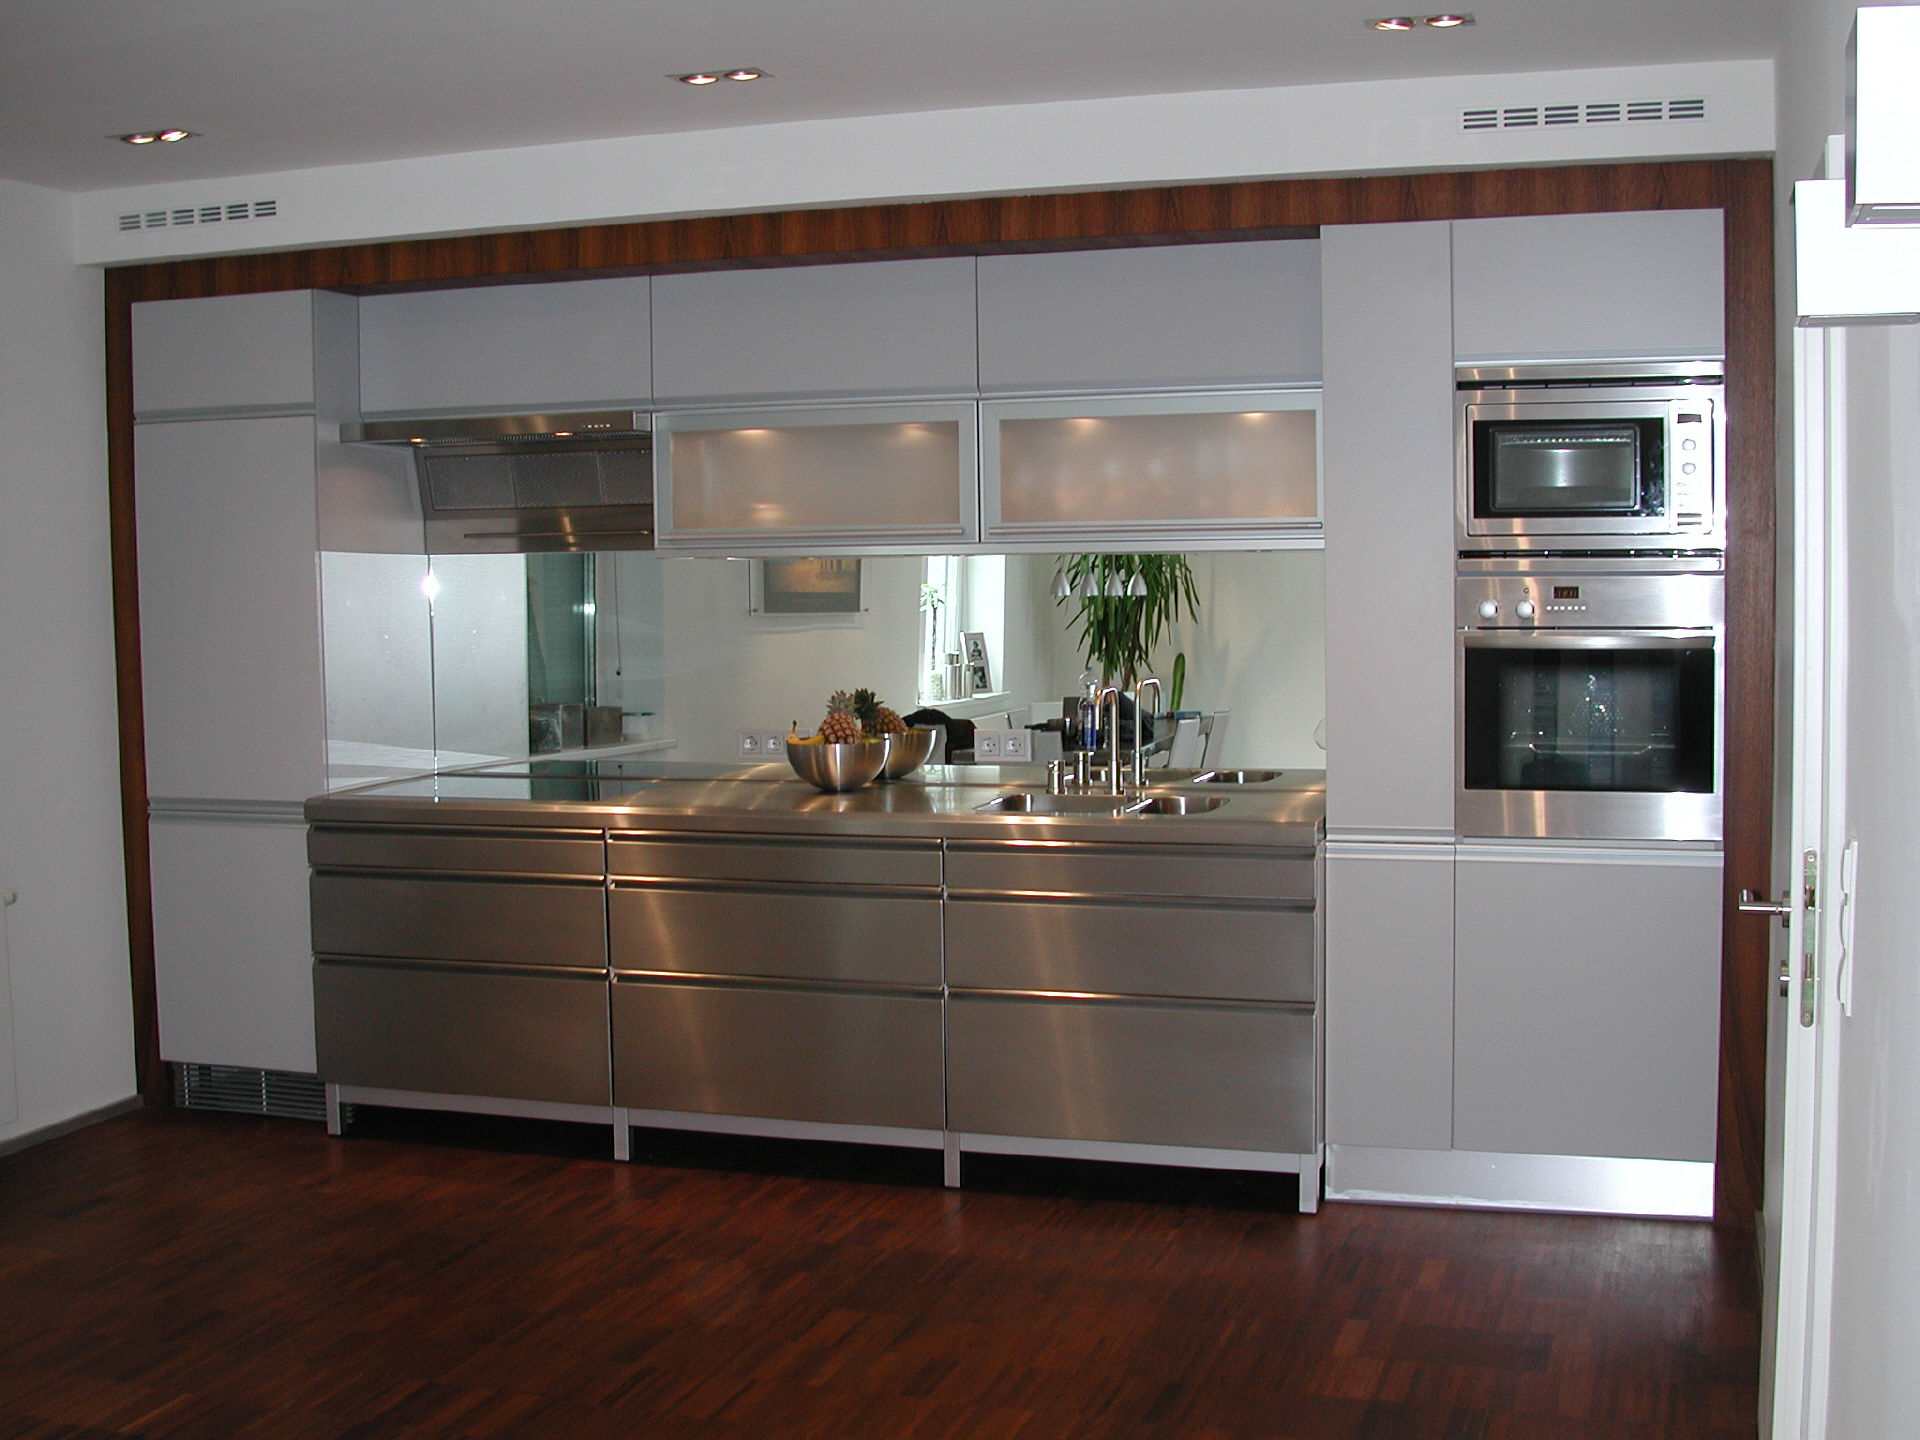 Ikea Kitchens For